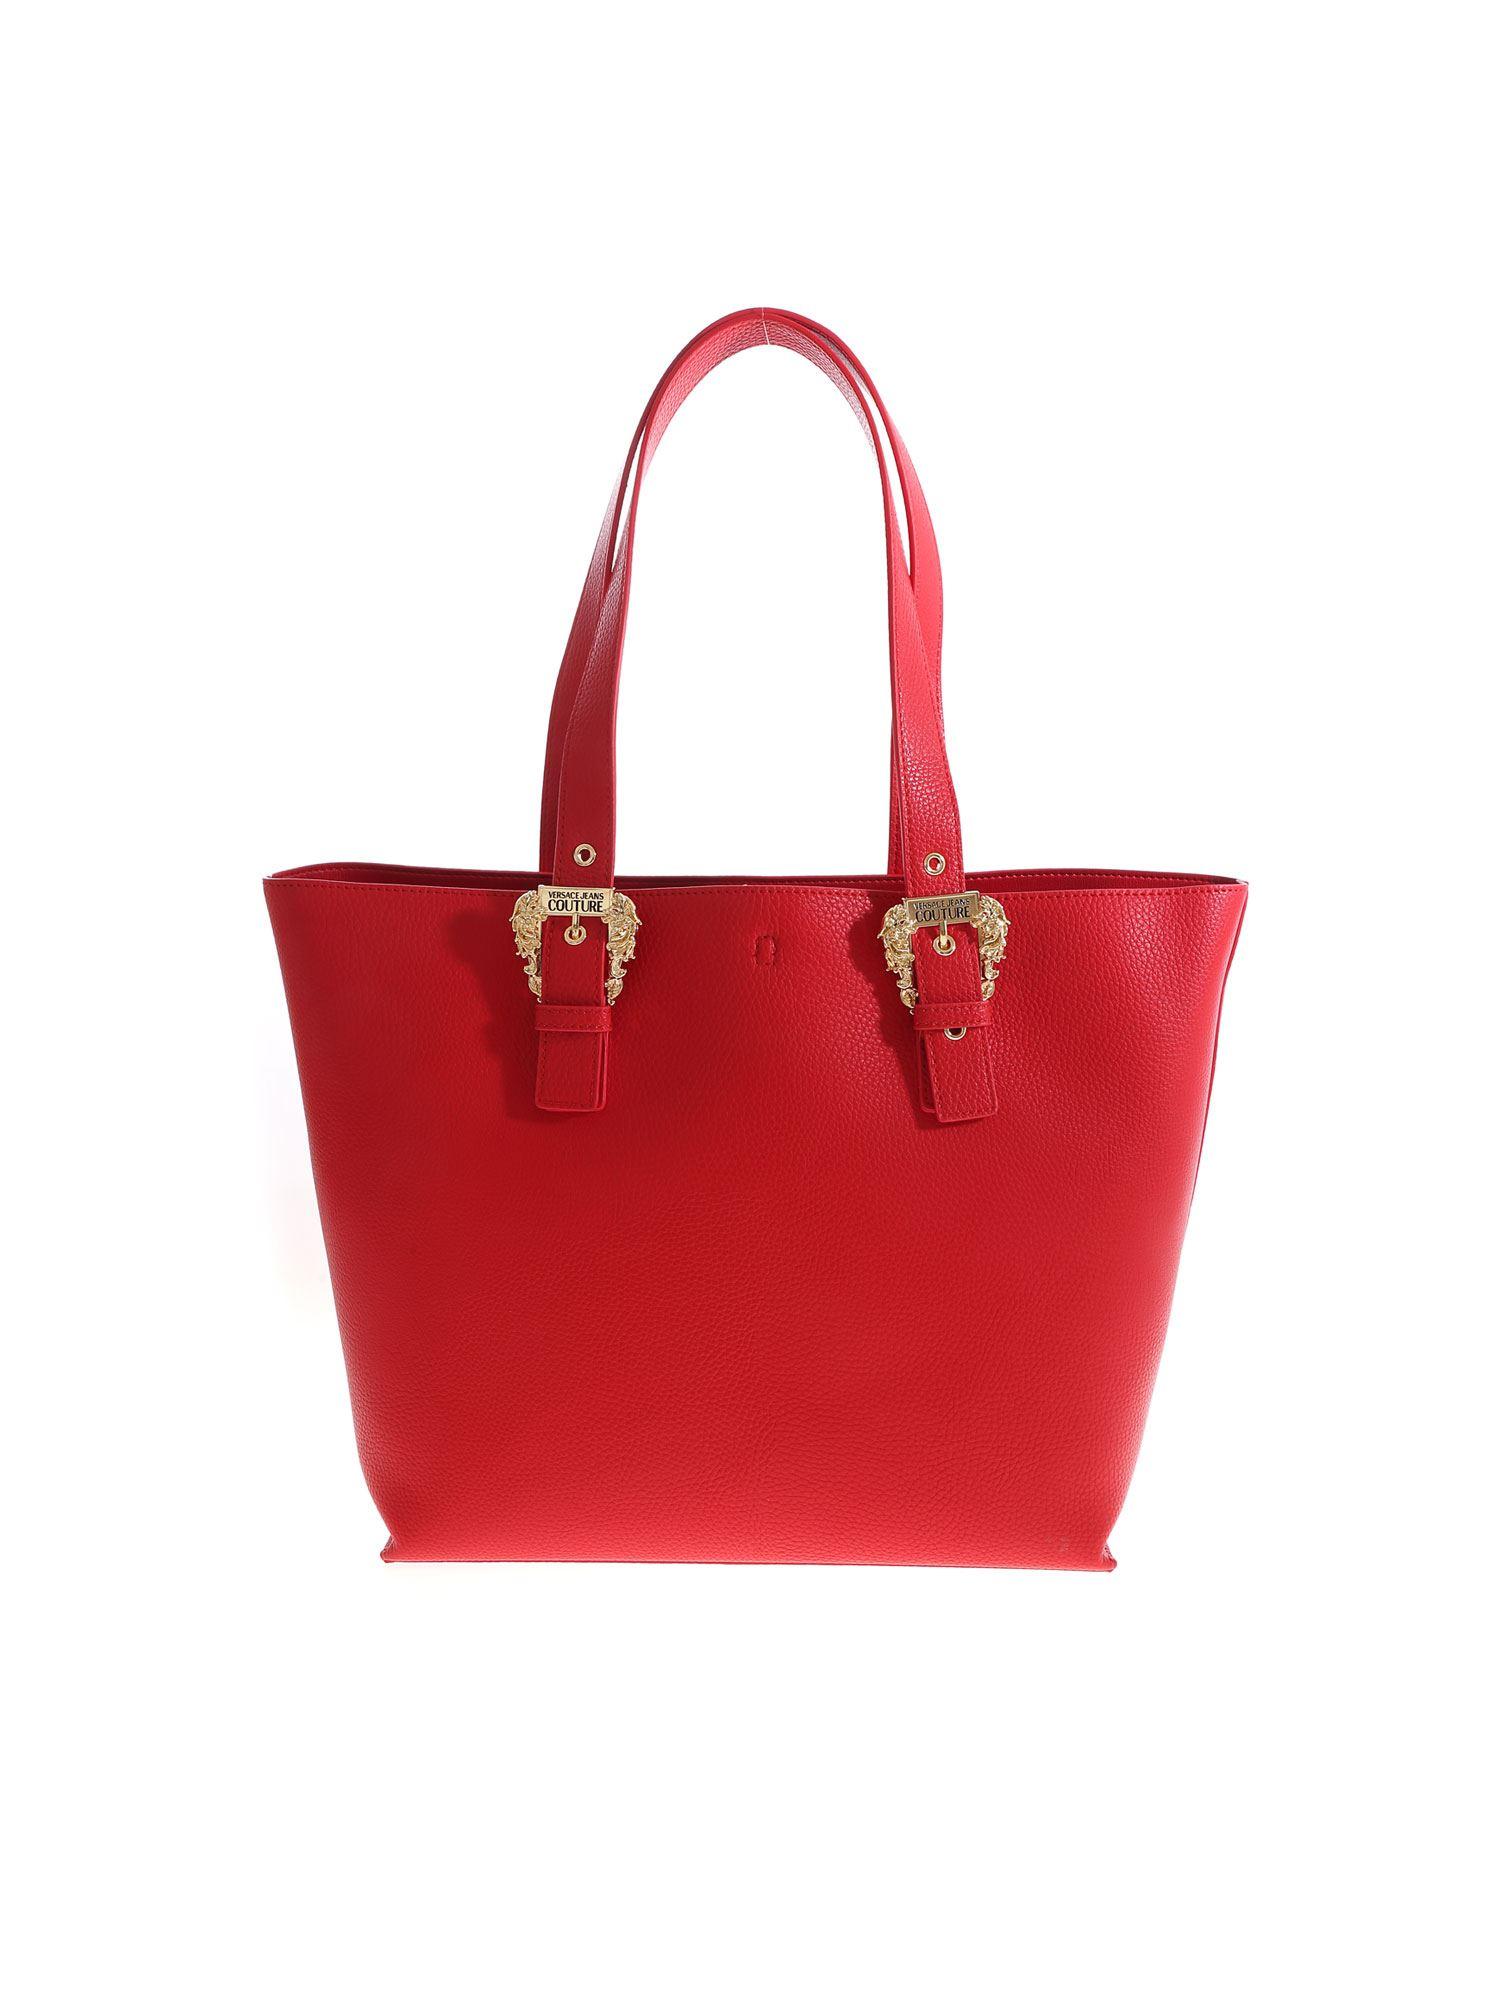 Versace GOLD COLORED BUCKLE SHOPPER IN RED